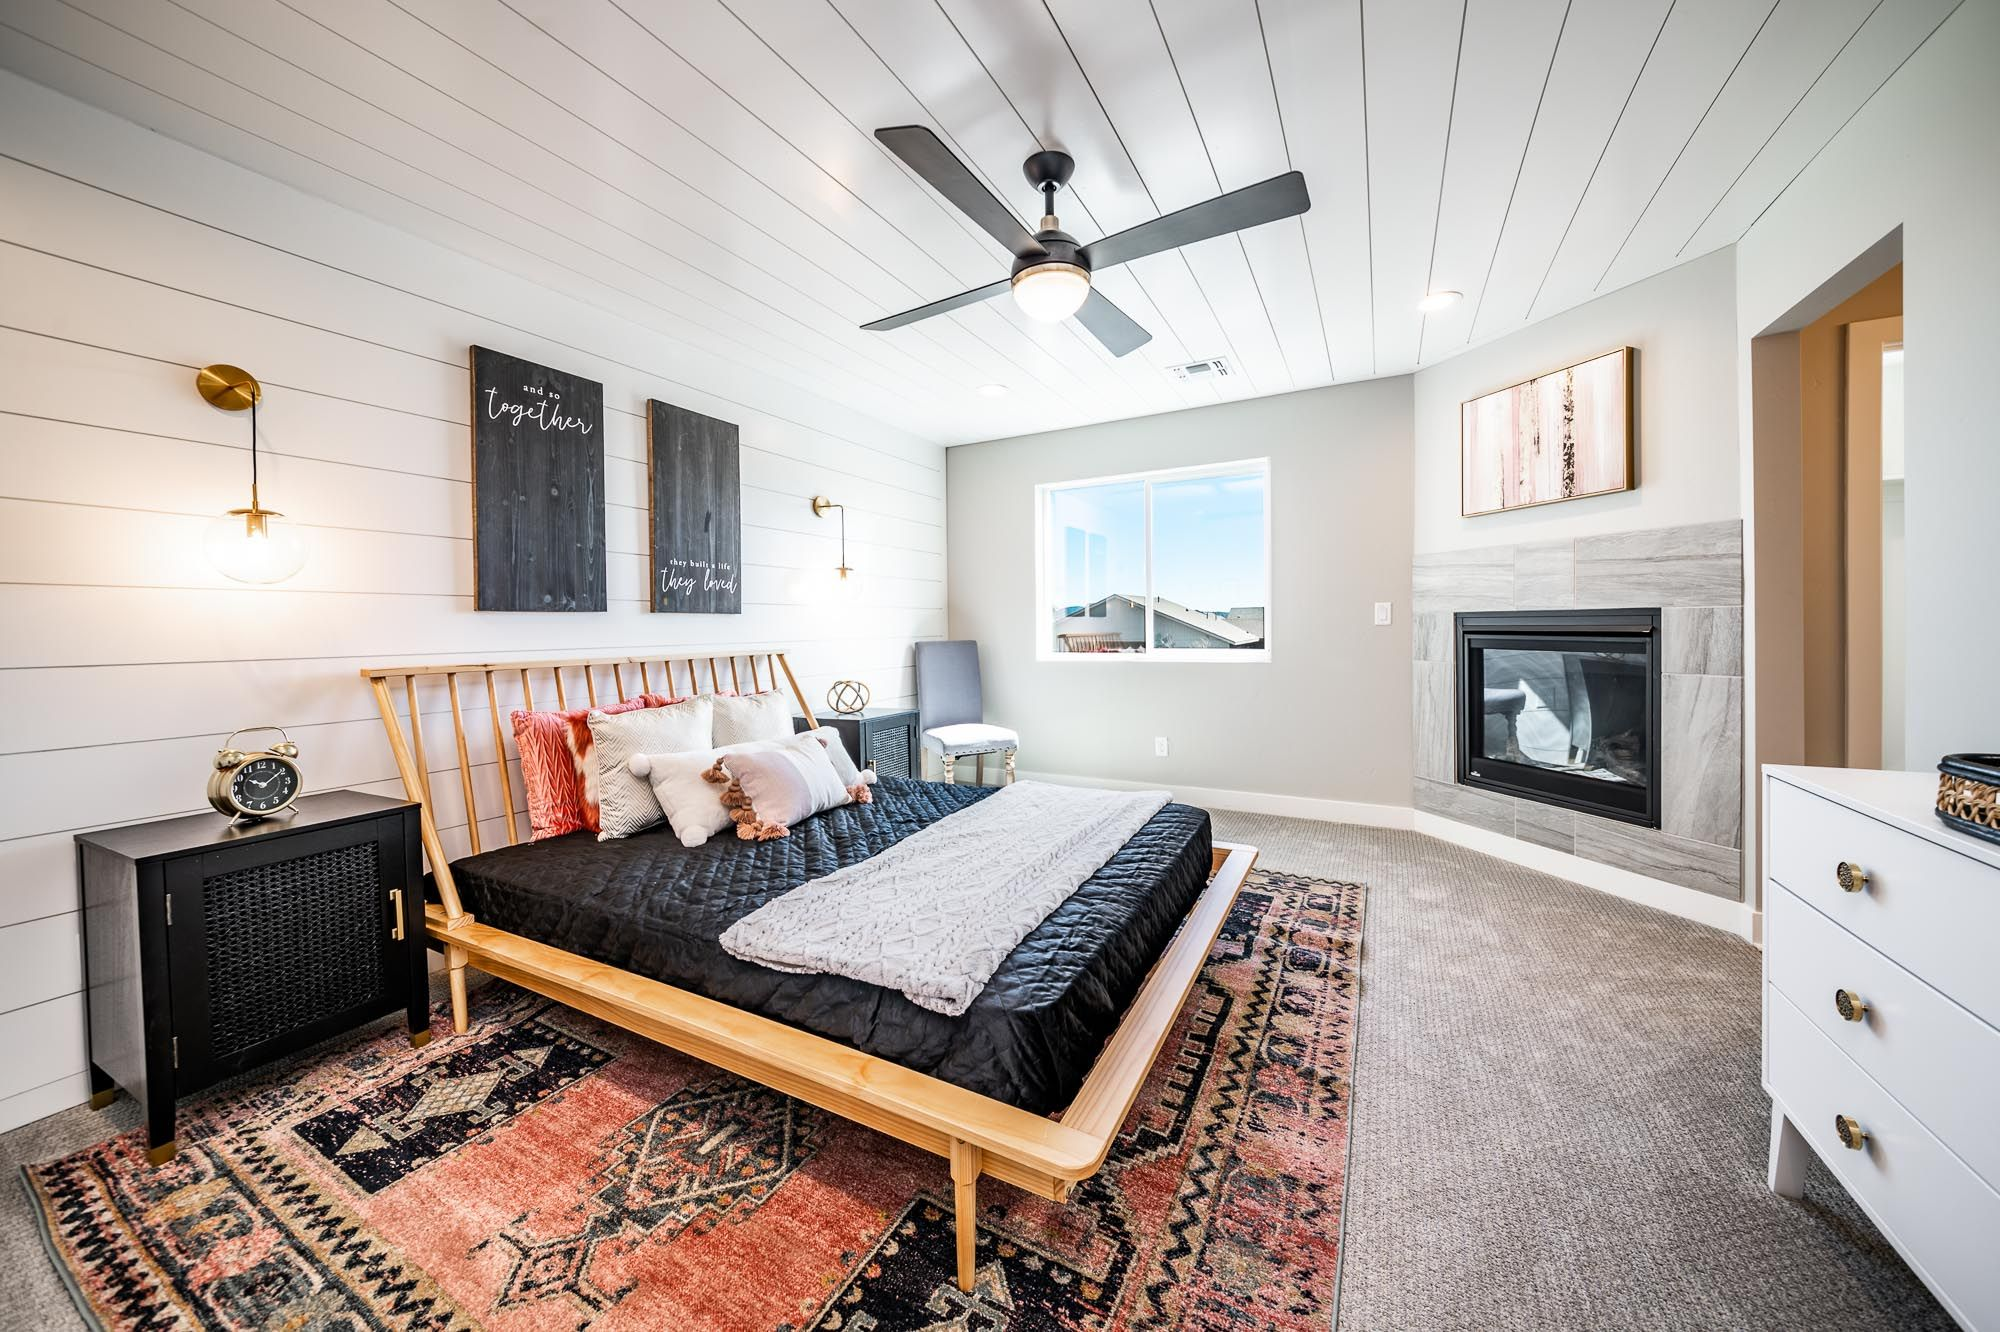 Bedroom featured in the Plan 3 By Solid Homes in Flagstaff, AZ